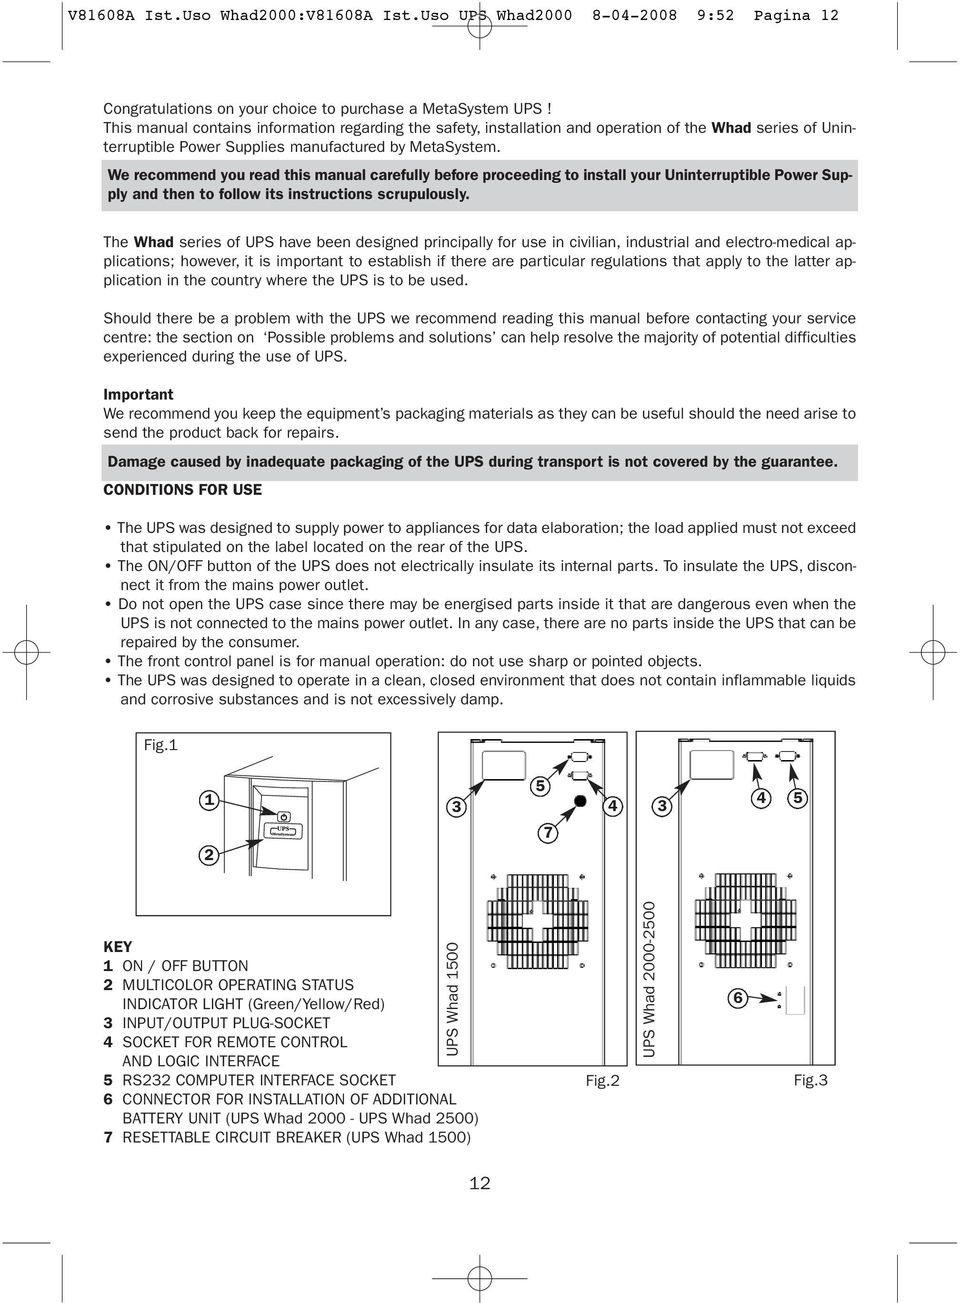 We recommend you read this manual carefully before proceeding to install your Uninterruptible Power Supply and then to follow its instructions scrupulously.